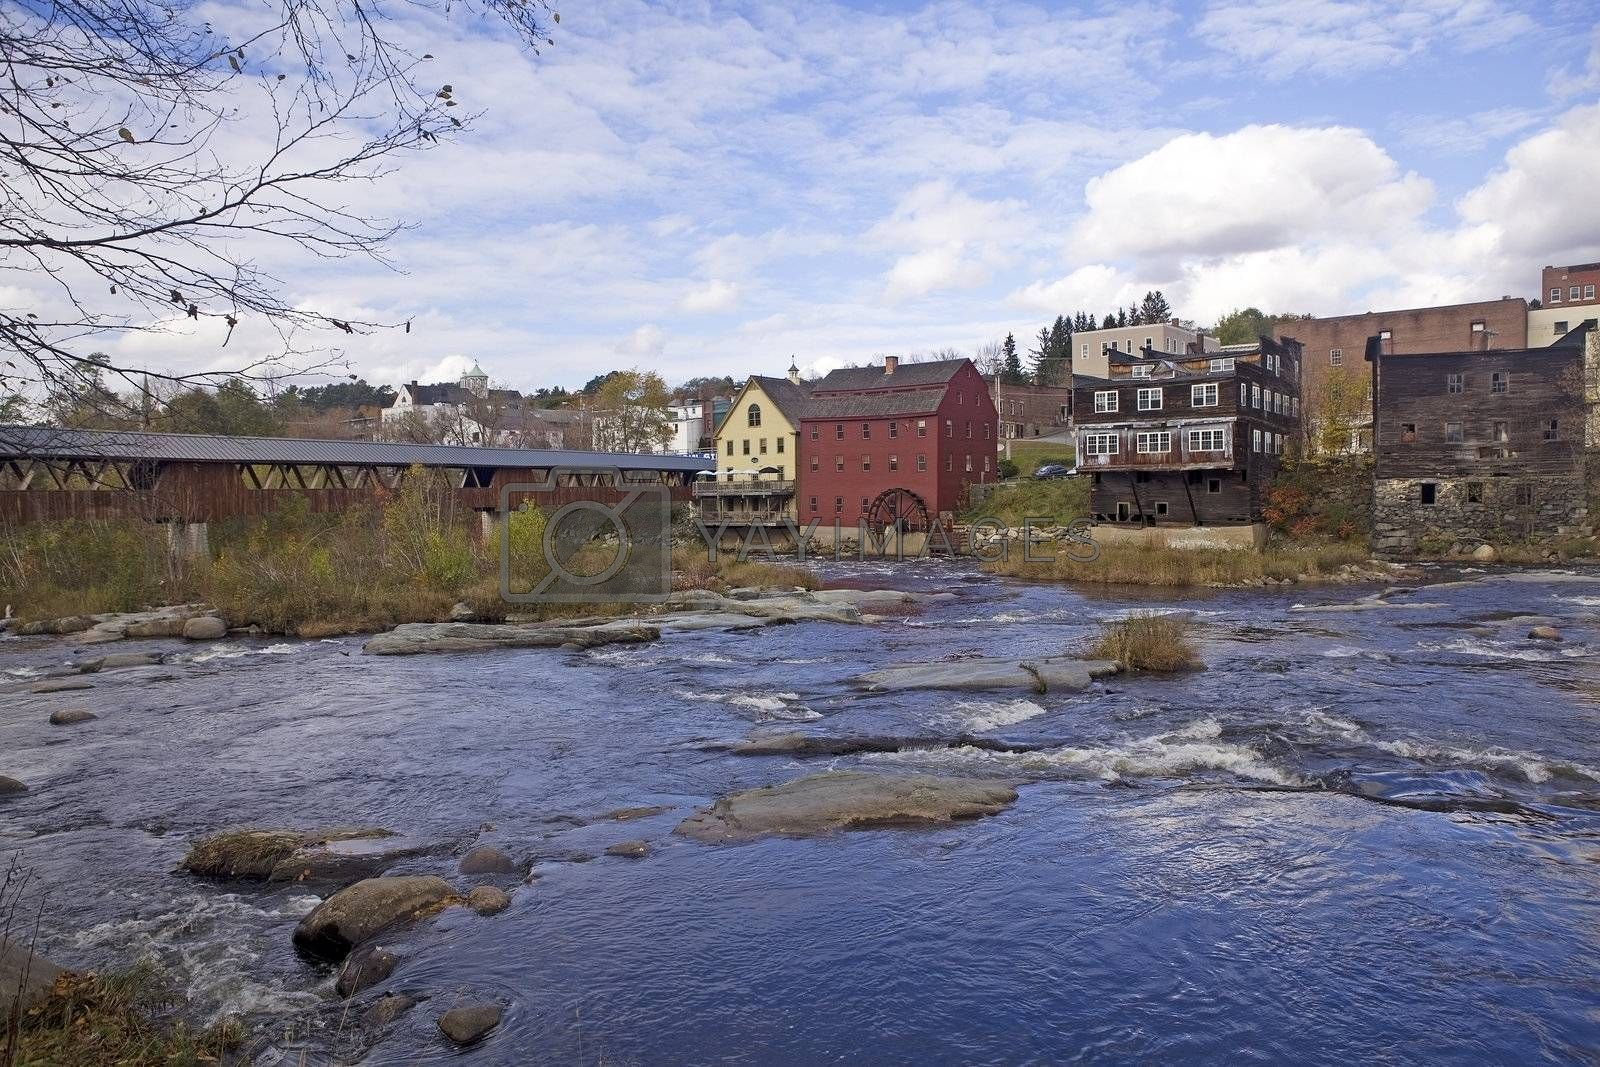 Ammonoosuc River flowing across rocks and under a covered bridge in Littleton, New Hampshire. An old grist mill and water wheel are near the bridge.